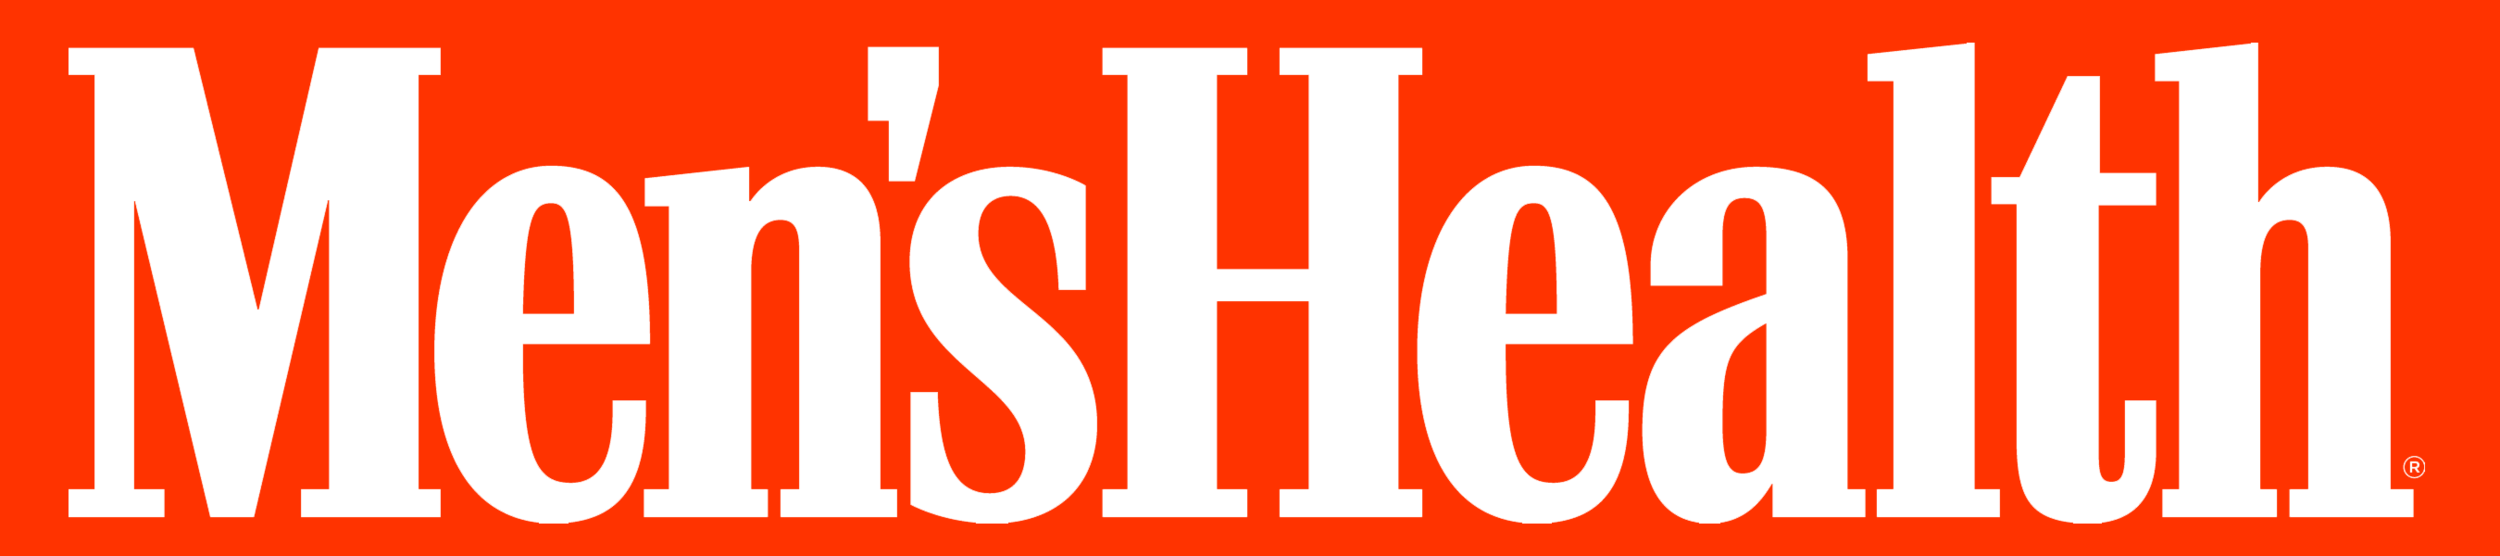 Men's Health Logo.png